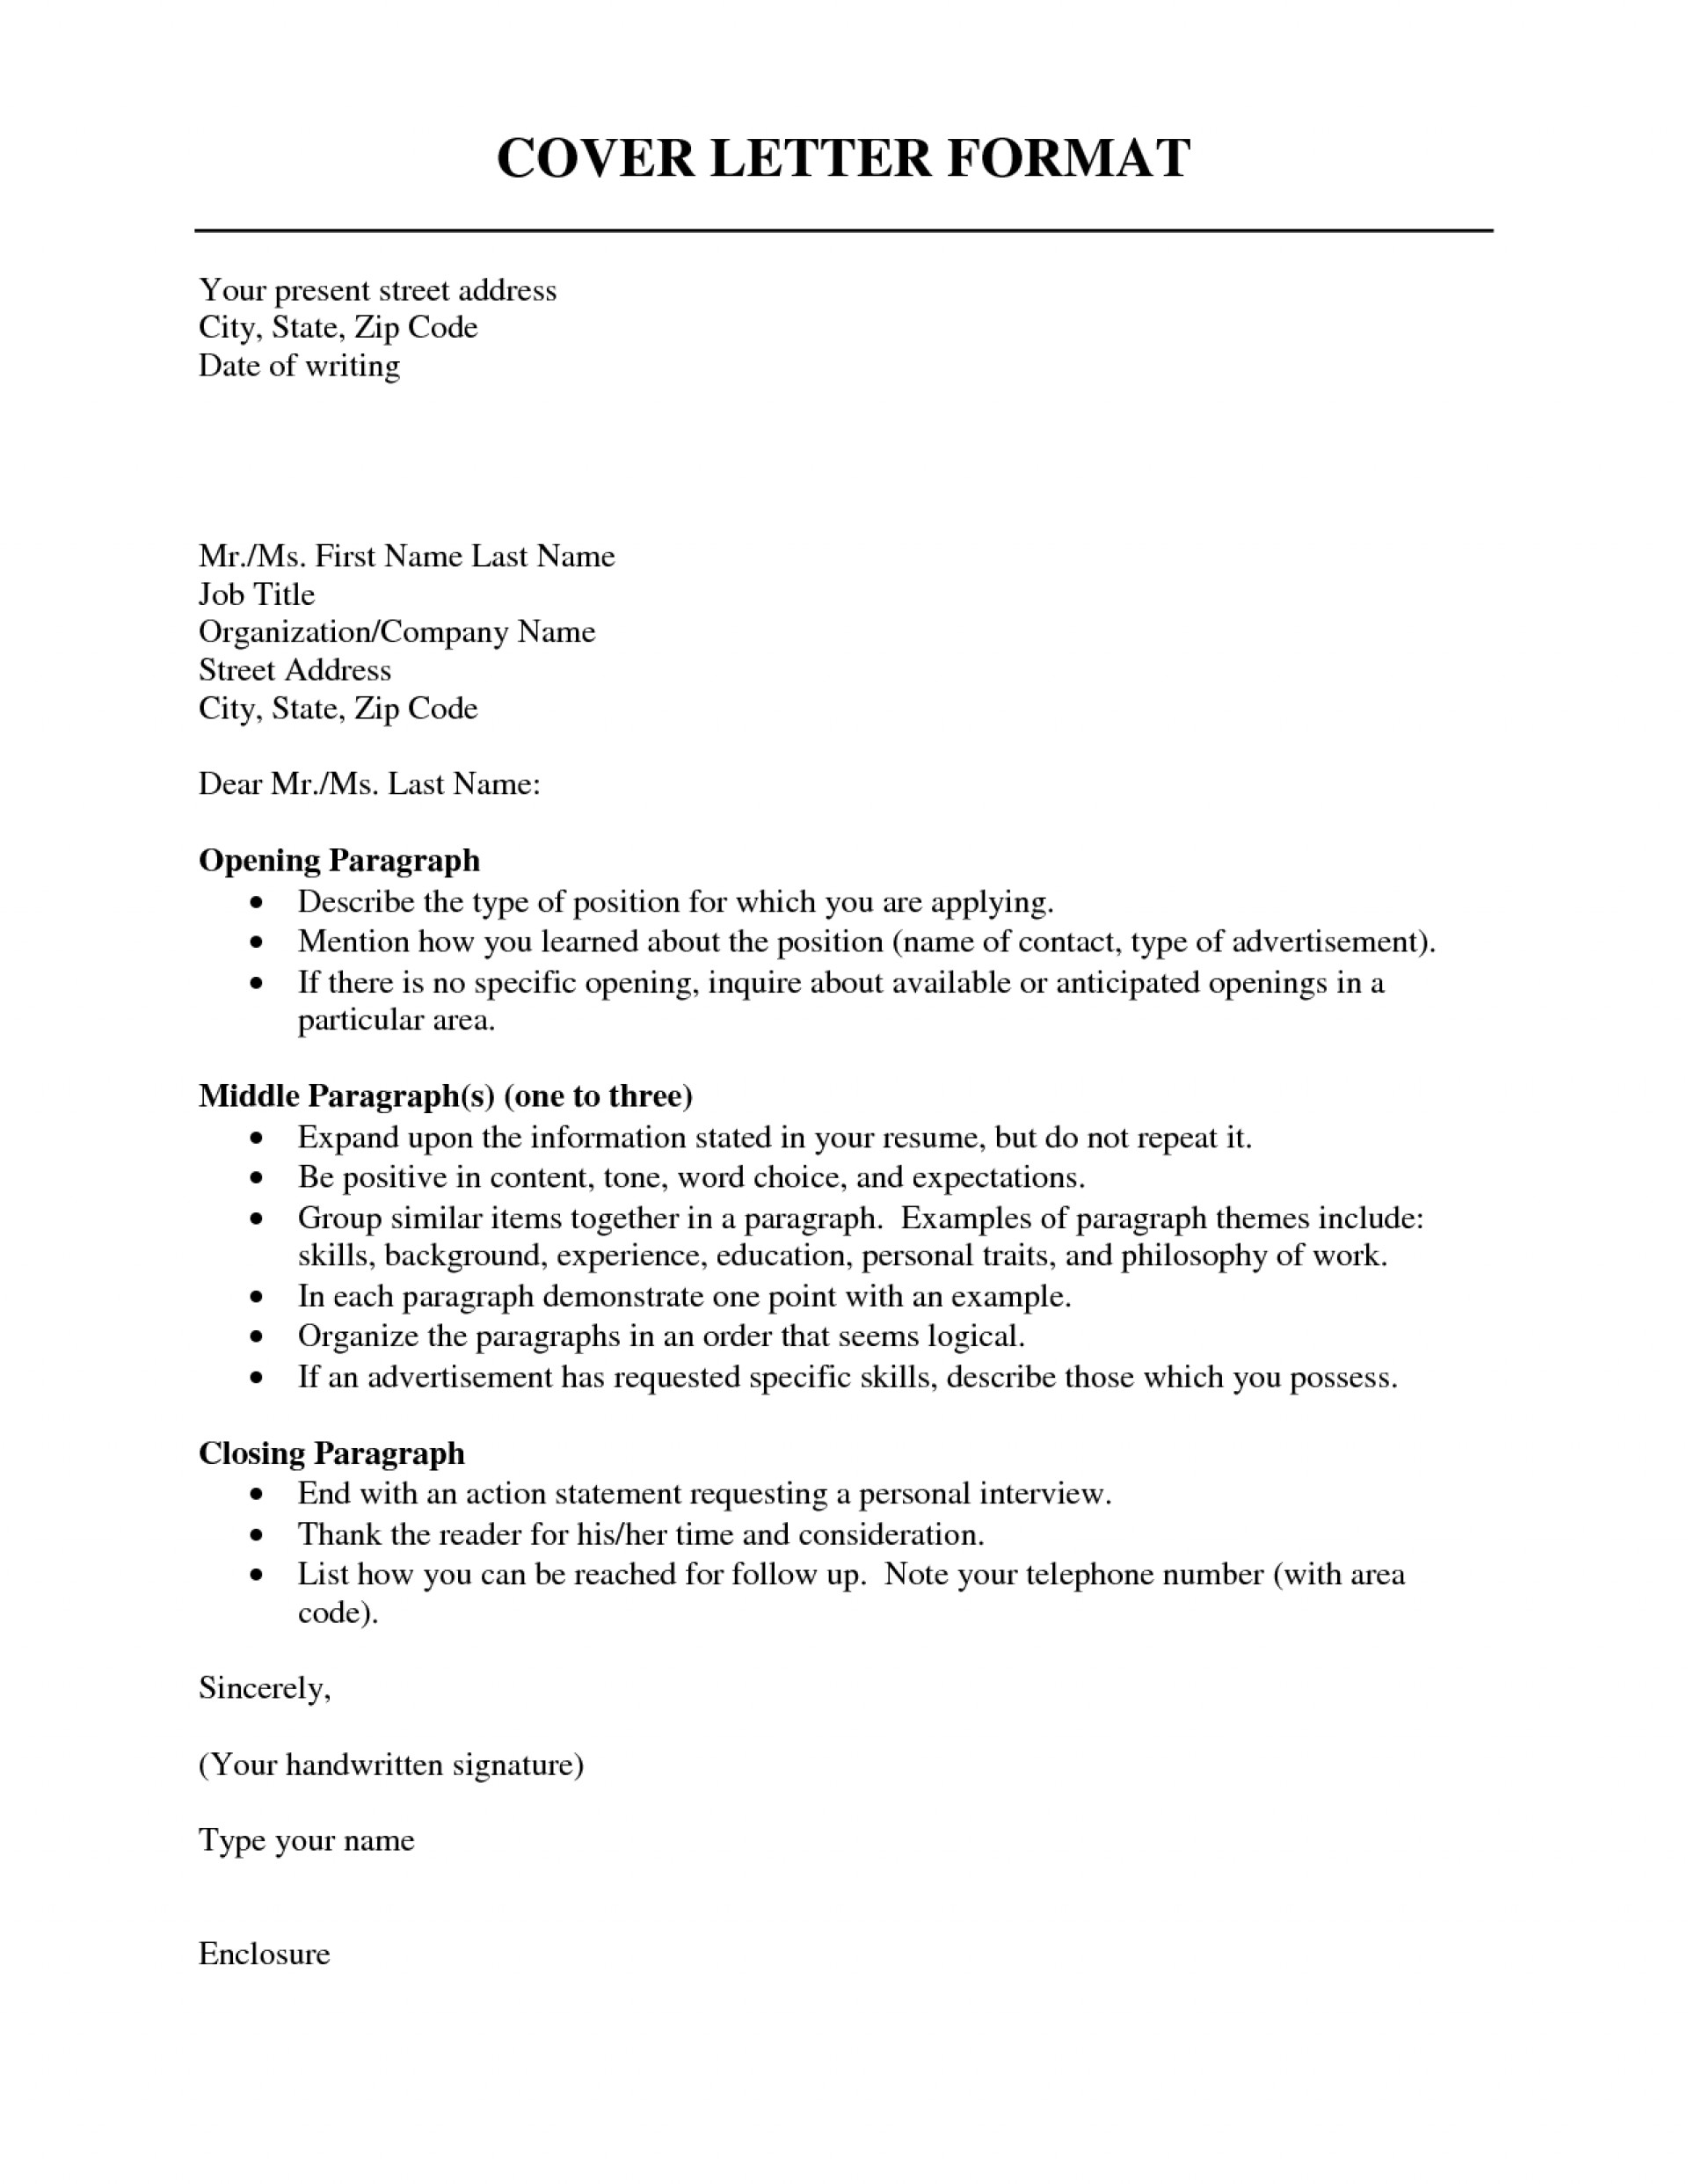 Virginia tech admissions essay